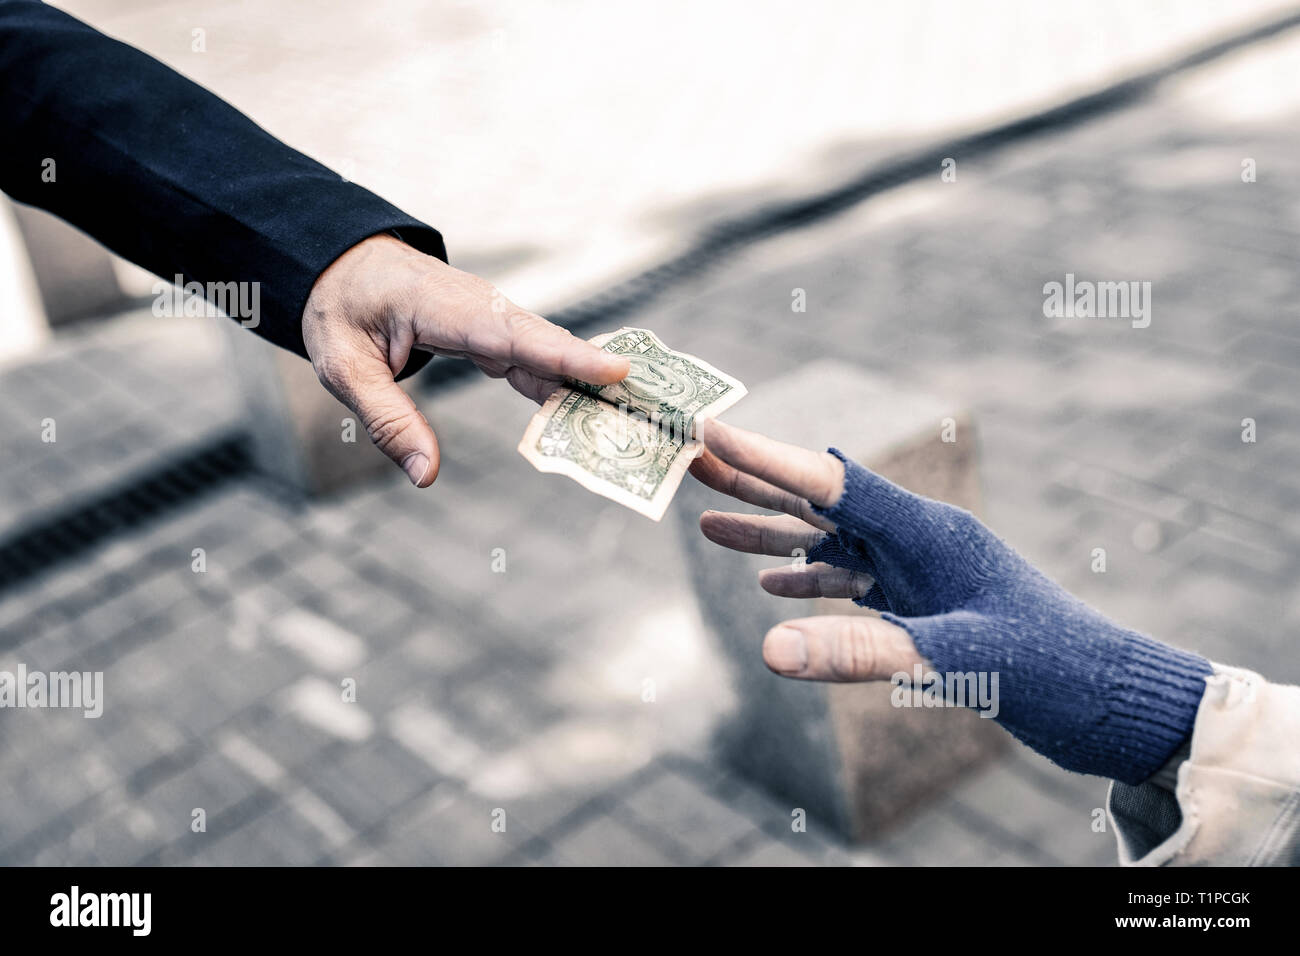 Caring man putting money in hands of needed old man - Stock Image